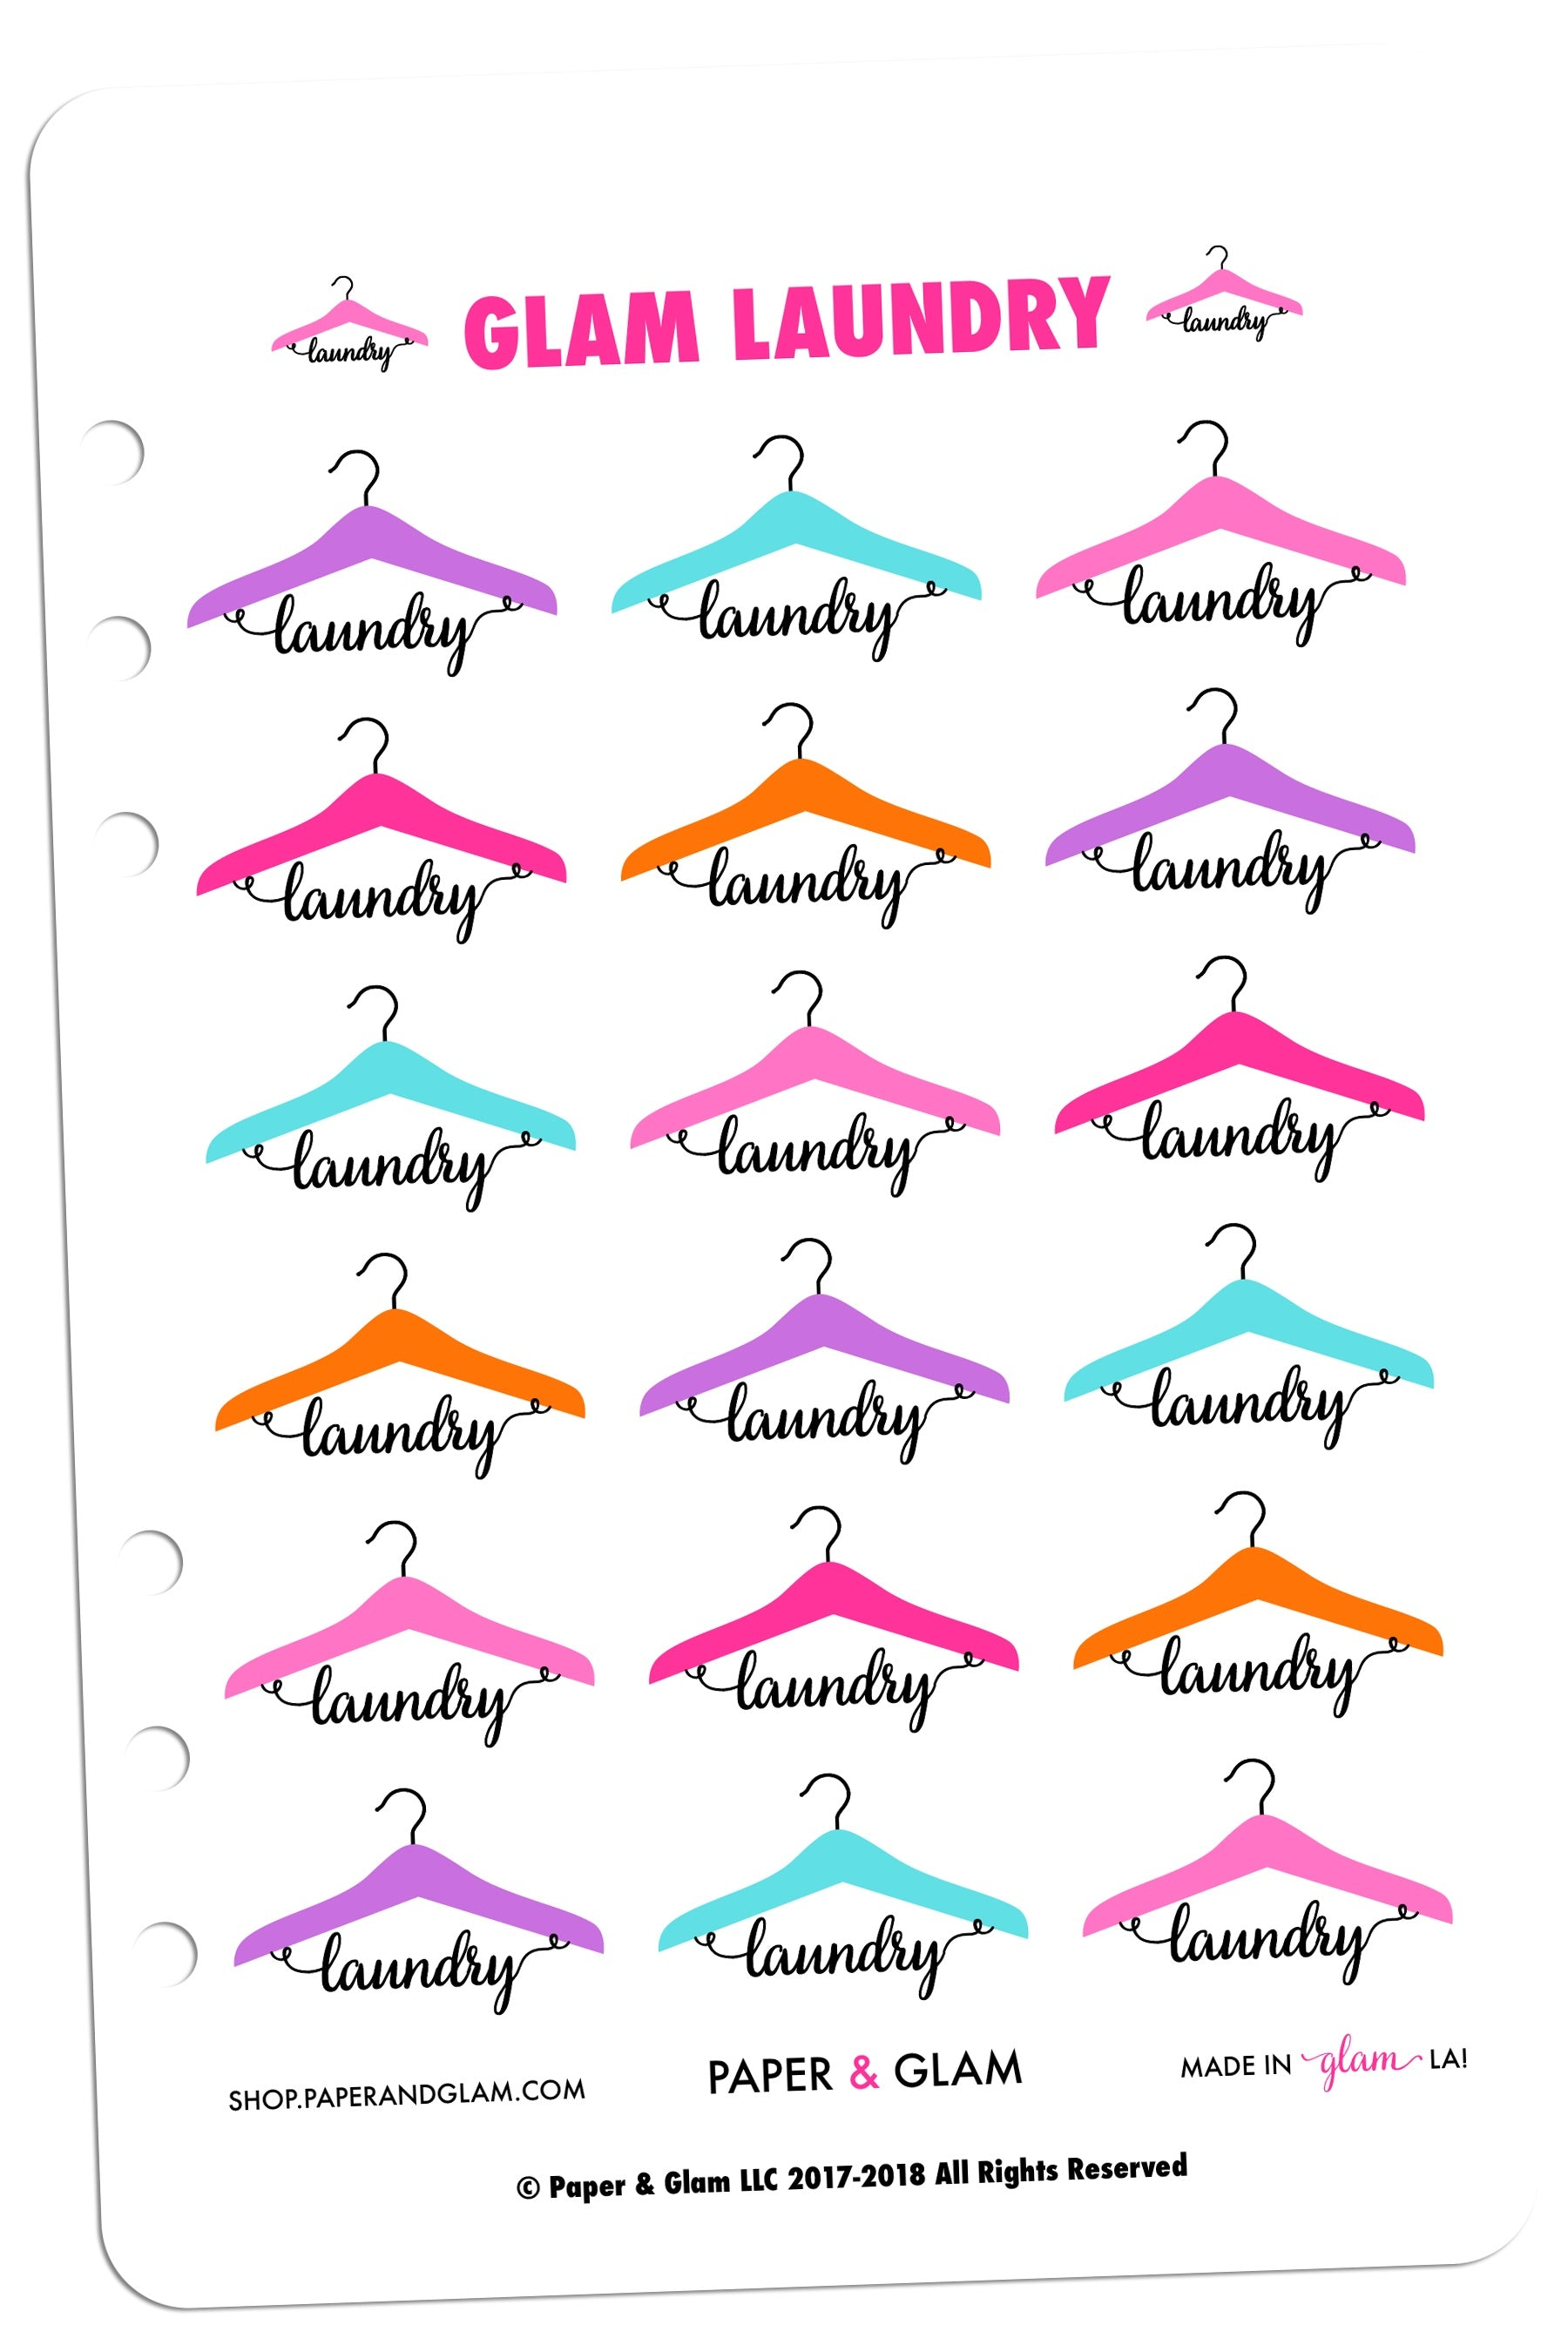 Glam laundry digital planner stickers tap to expand